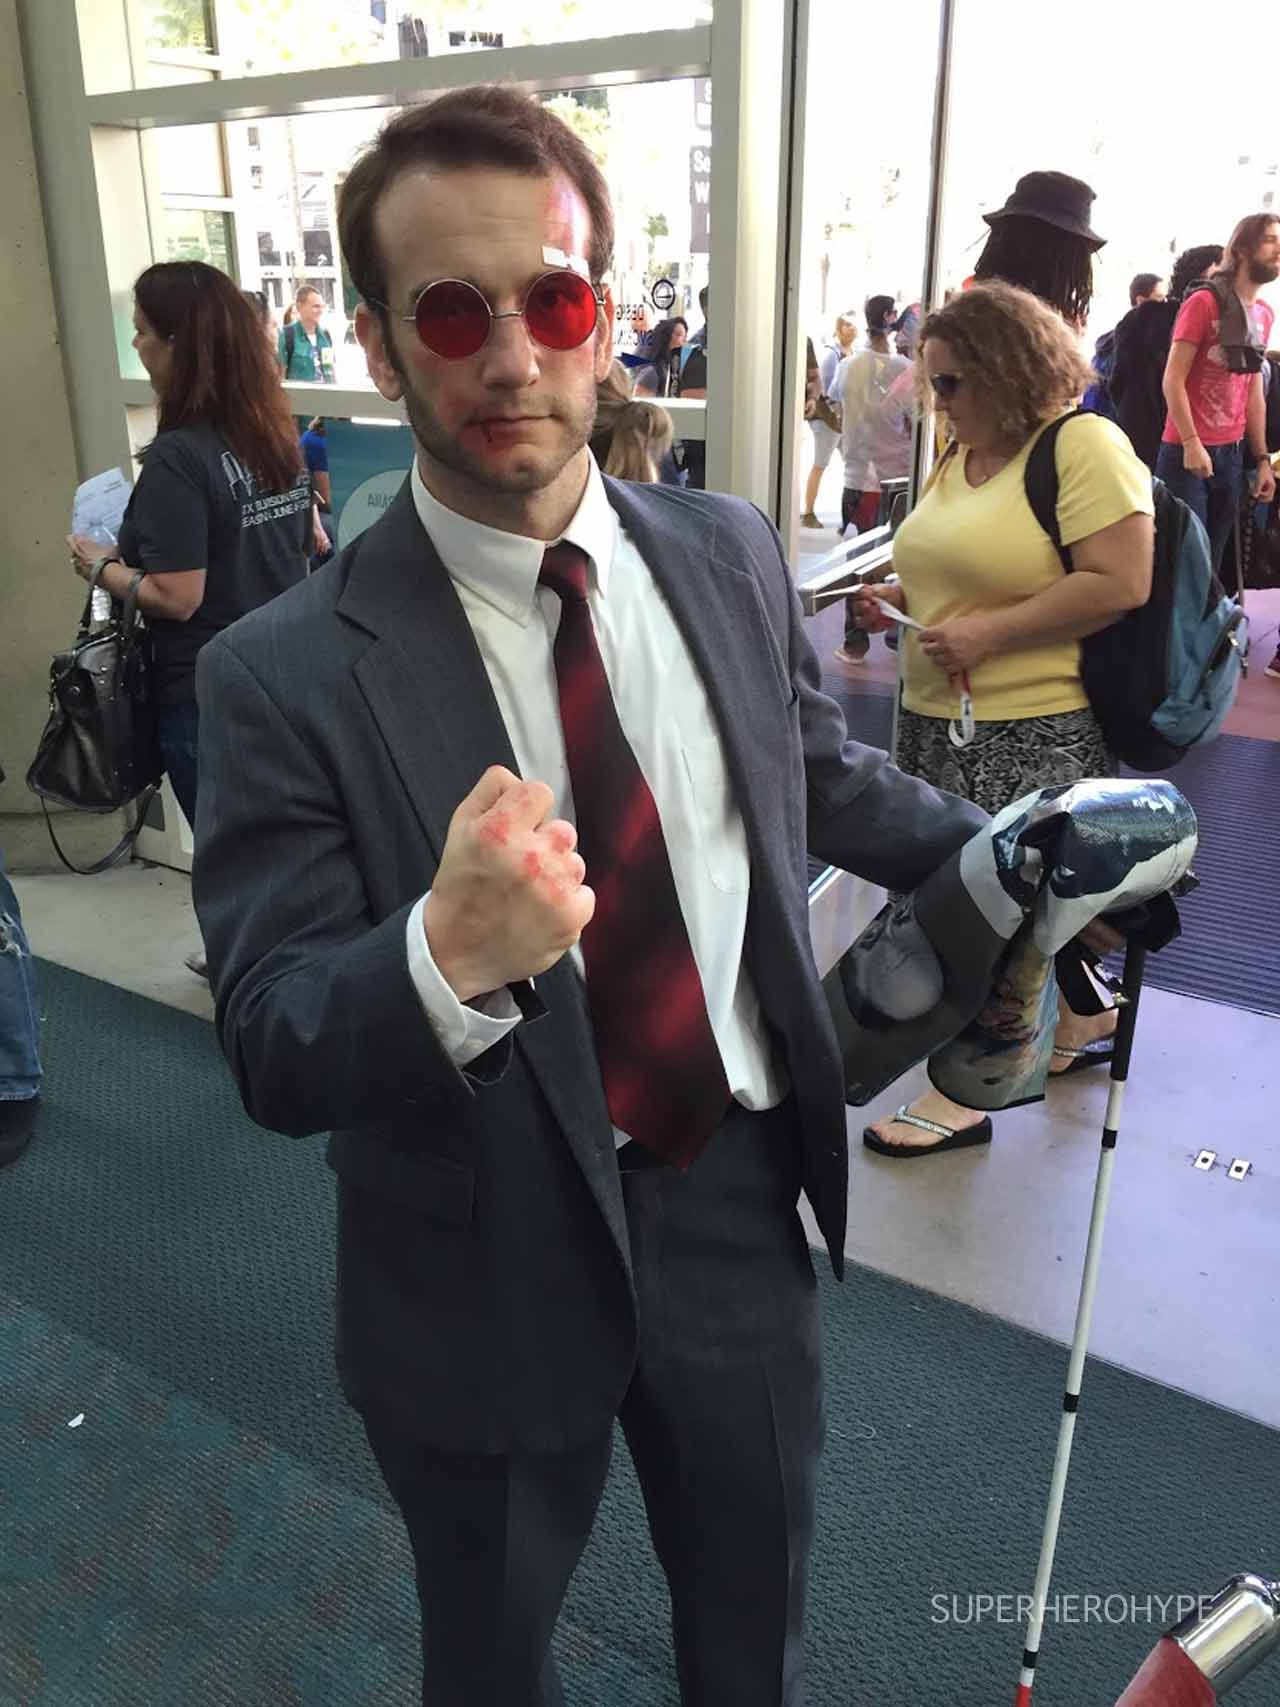 c0d0a7a1be872 Matt Murdock Daredevil - Comic-Con Cosplay Photos  Costumes at the 2015  Convention - SuperHeroHype